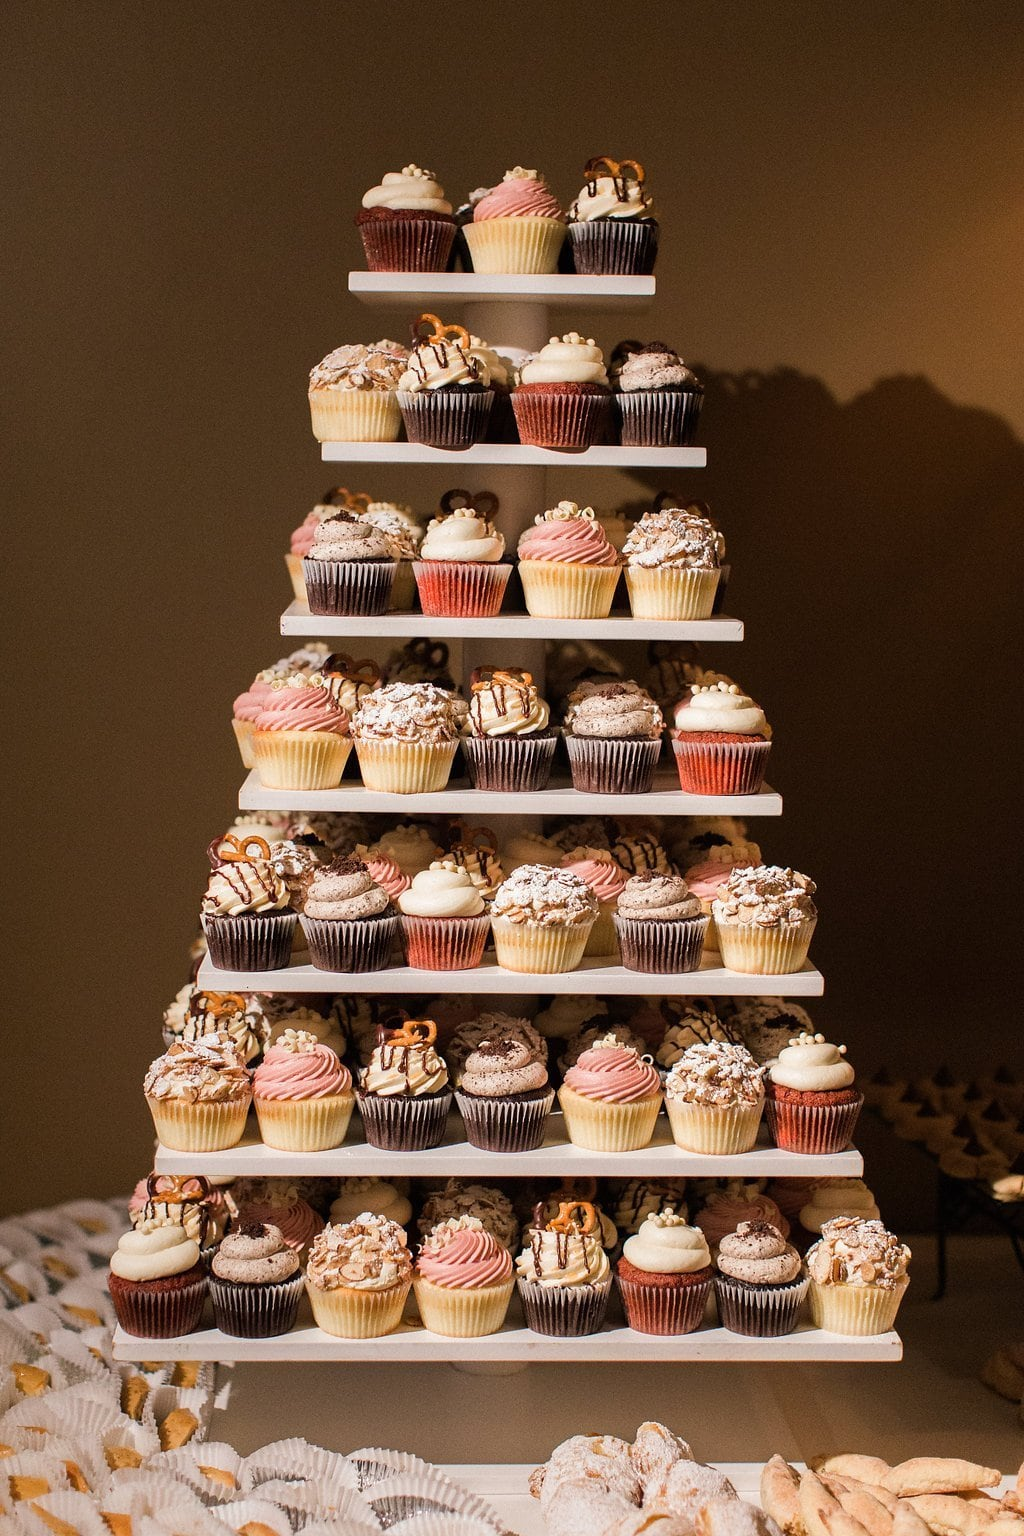 Cupcake tower at the dessert bar during the reception at the Club at Nevillewood